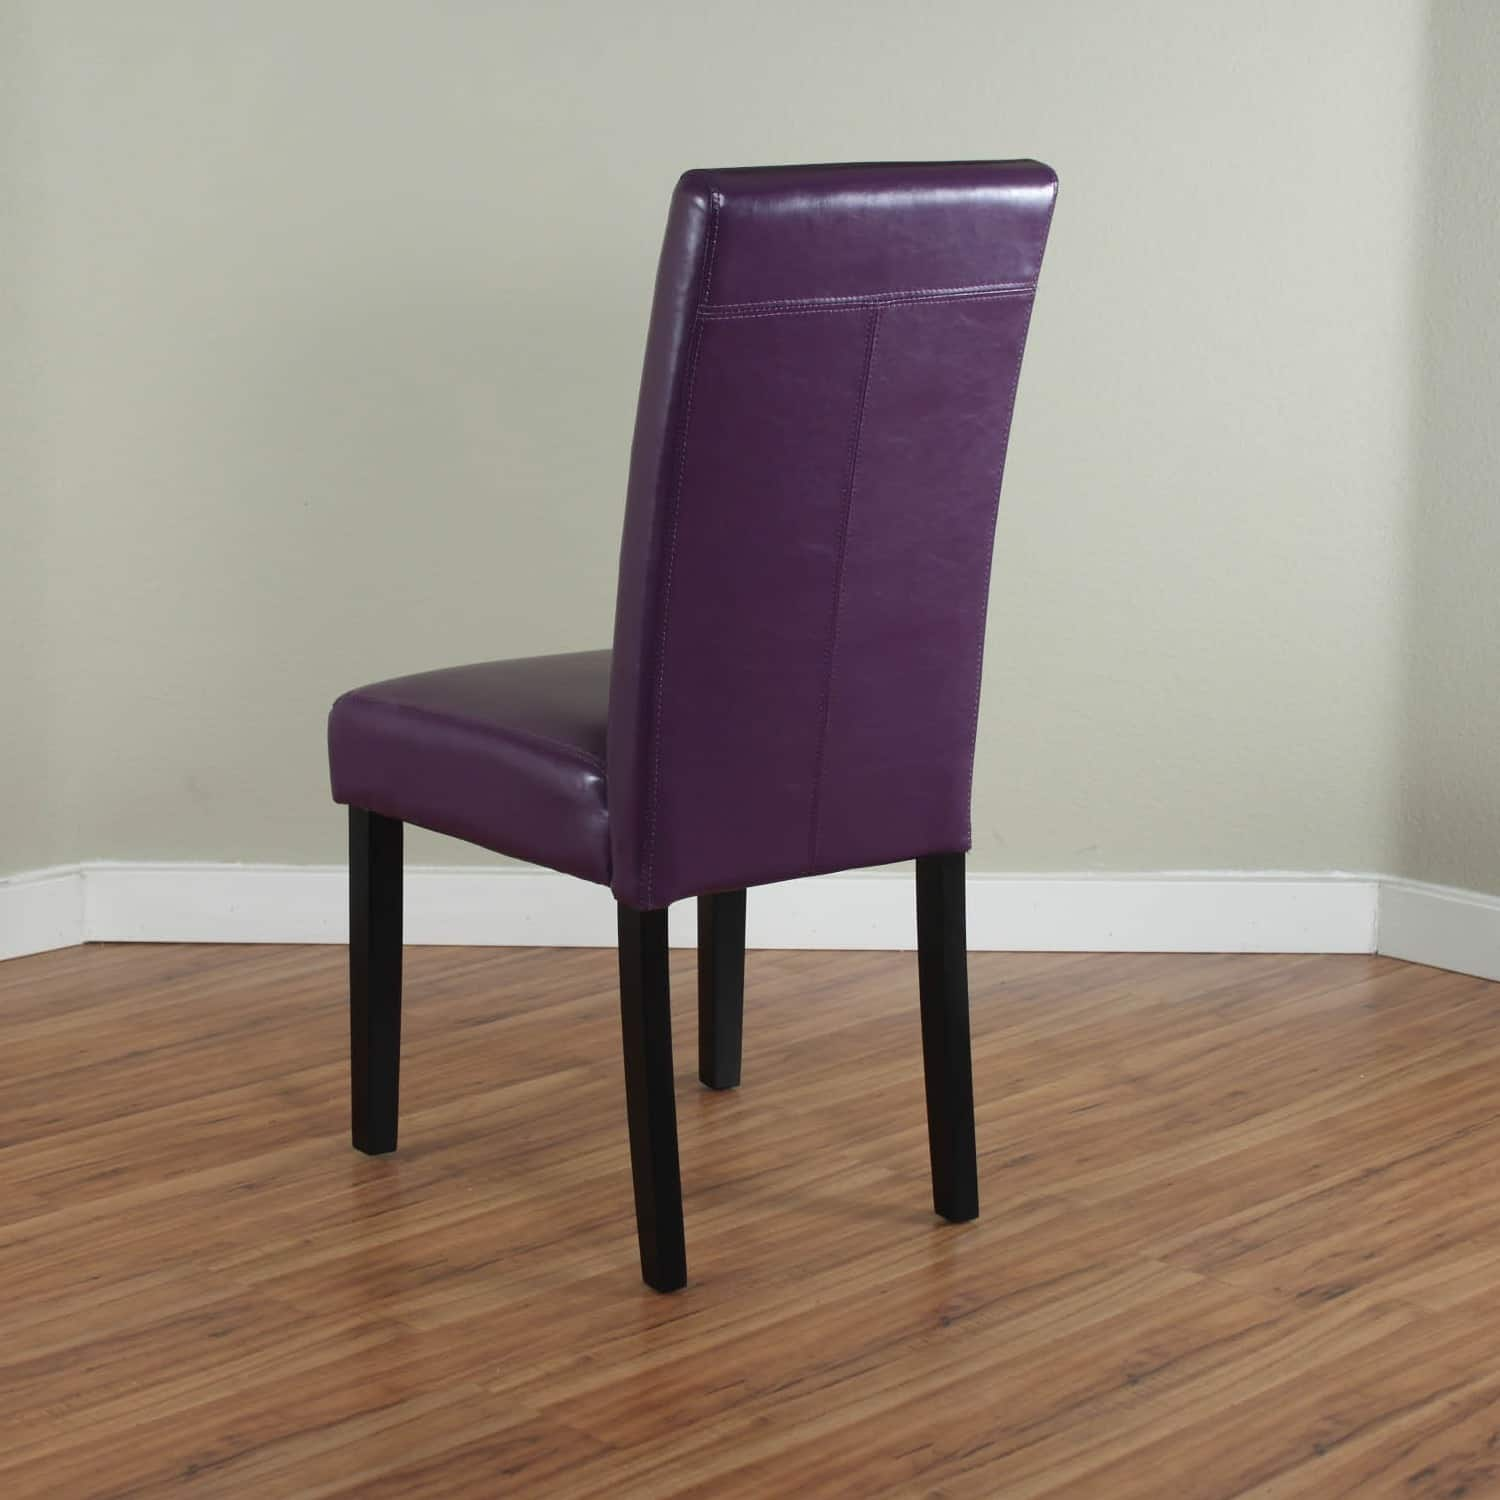 Dining Chairs Deals: Buy Kitchen & Dining Room Chairs Online At Overstock